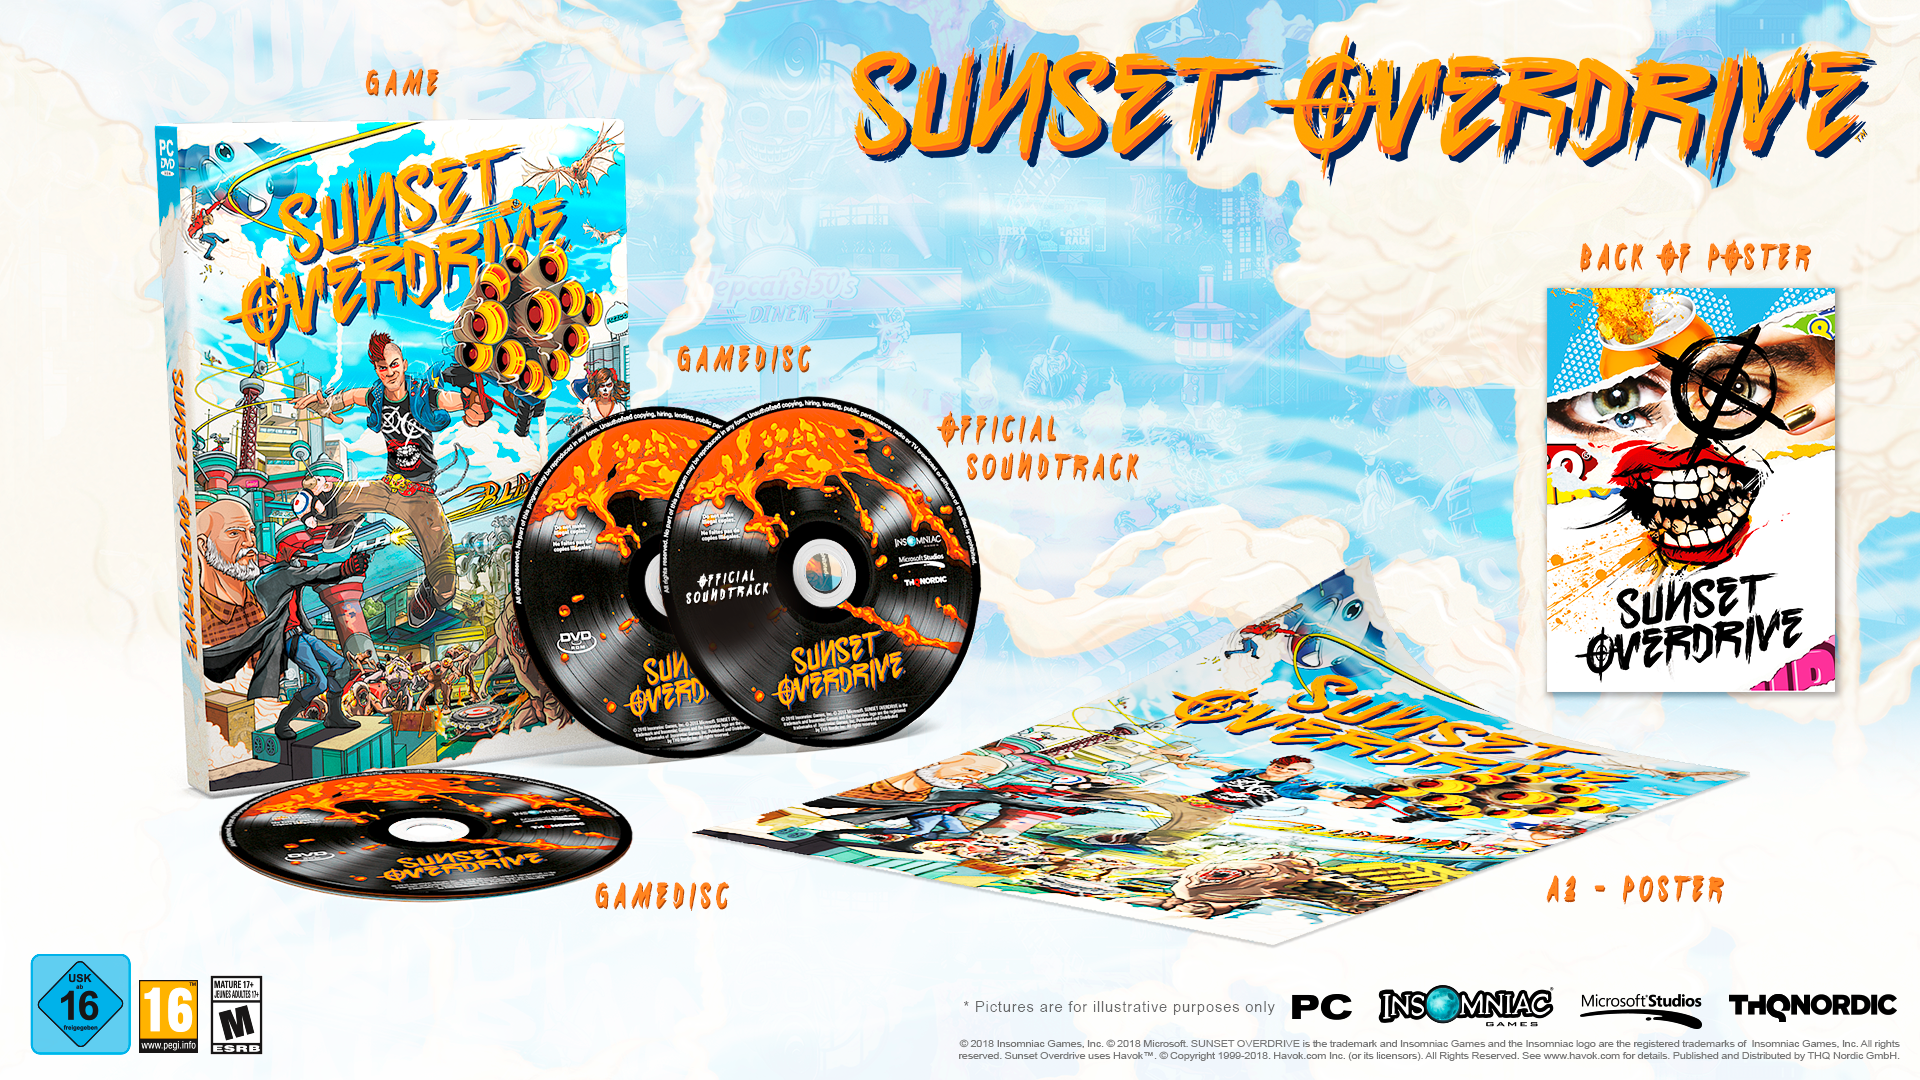 Sunset Overdrive Out Now on PC (Microsoft Store or Steam